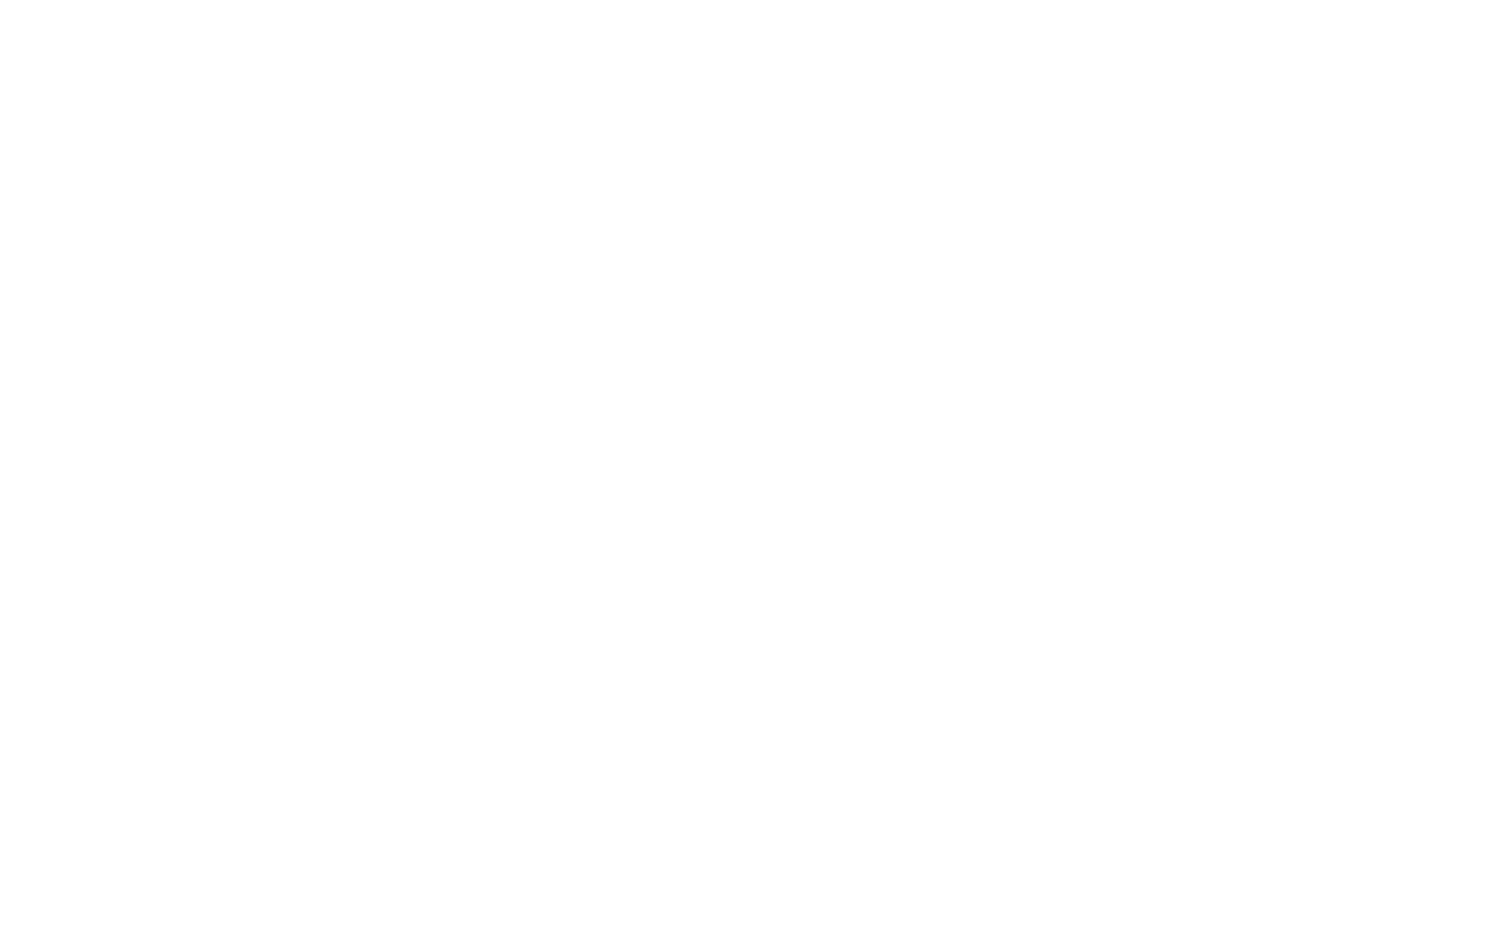 NRN Insight